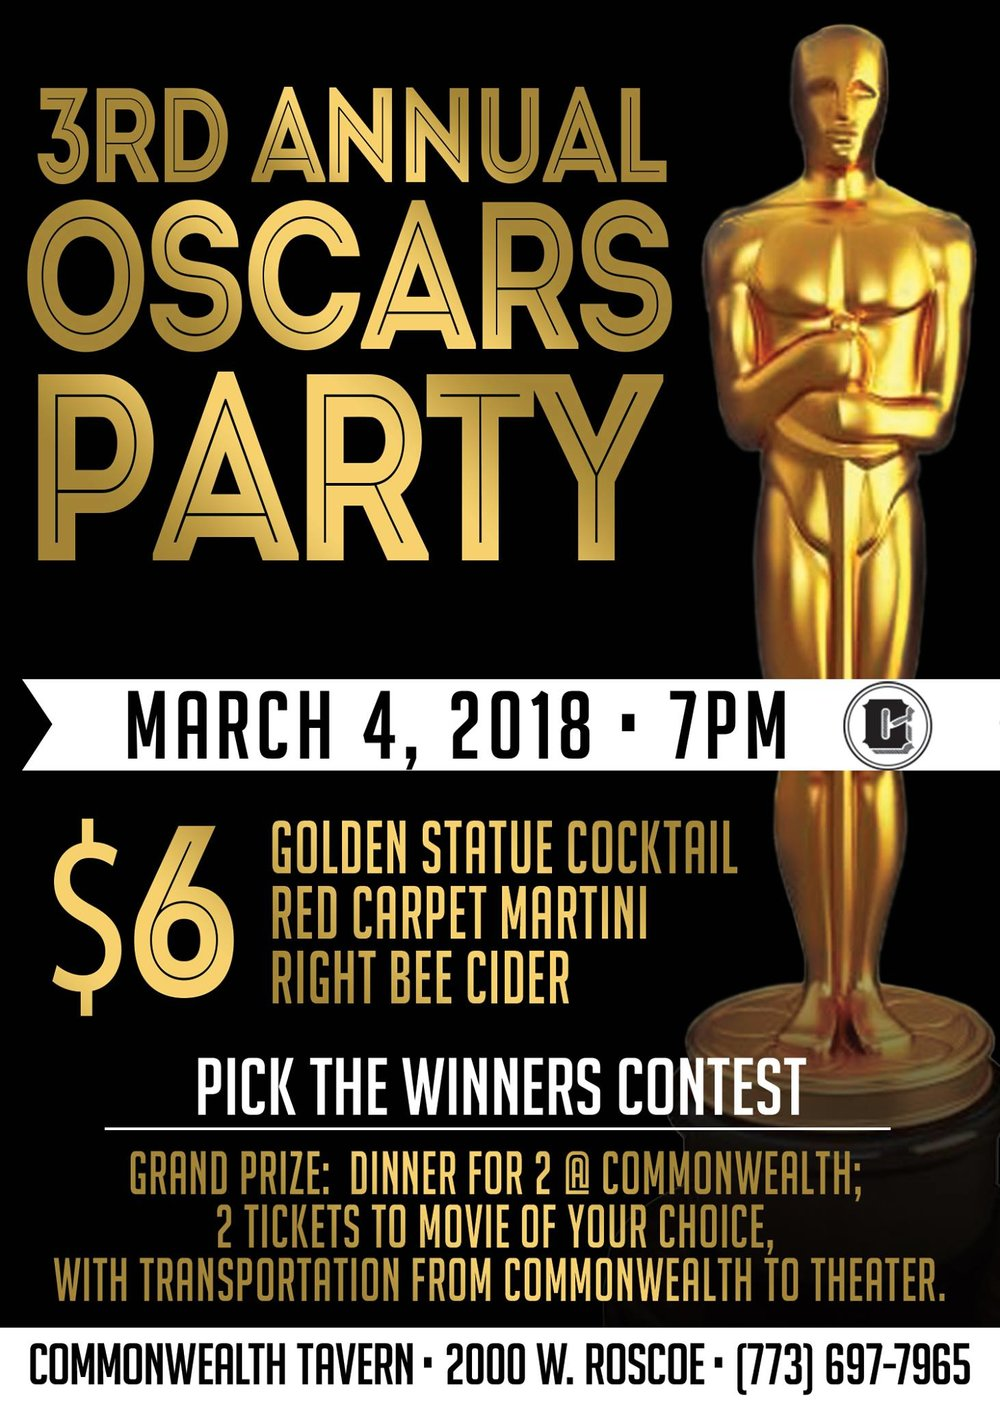 3 rd Annual Oscar's Party - Sunday @ 7pm:Commonwealth